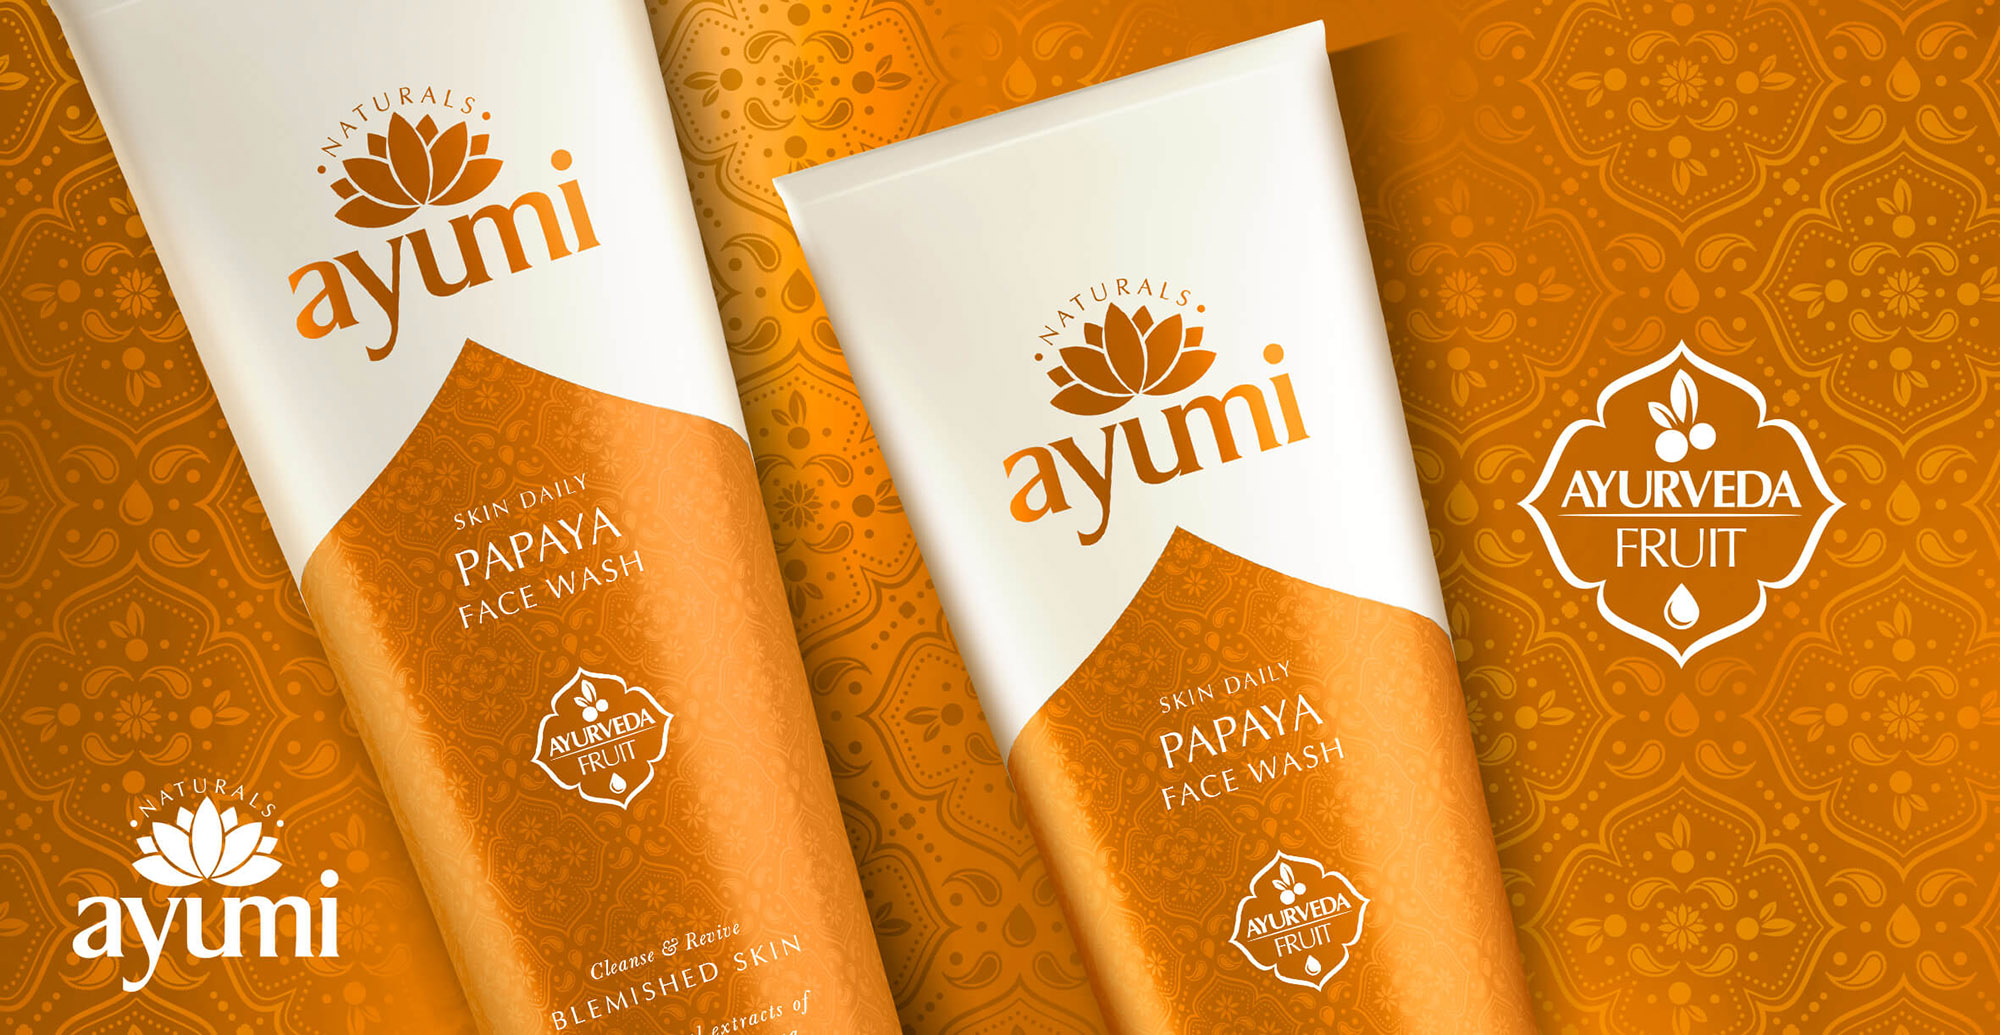 Health and Beauty Branding and Packaging Design for Beauty Brand Ayumi - Pack Shot Papaya Face Wash